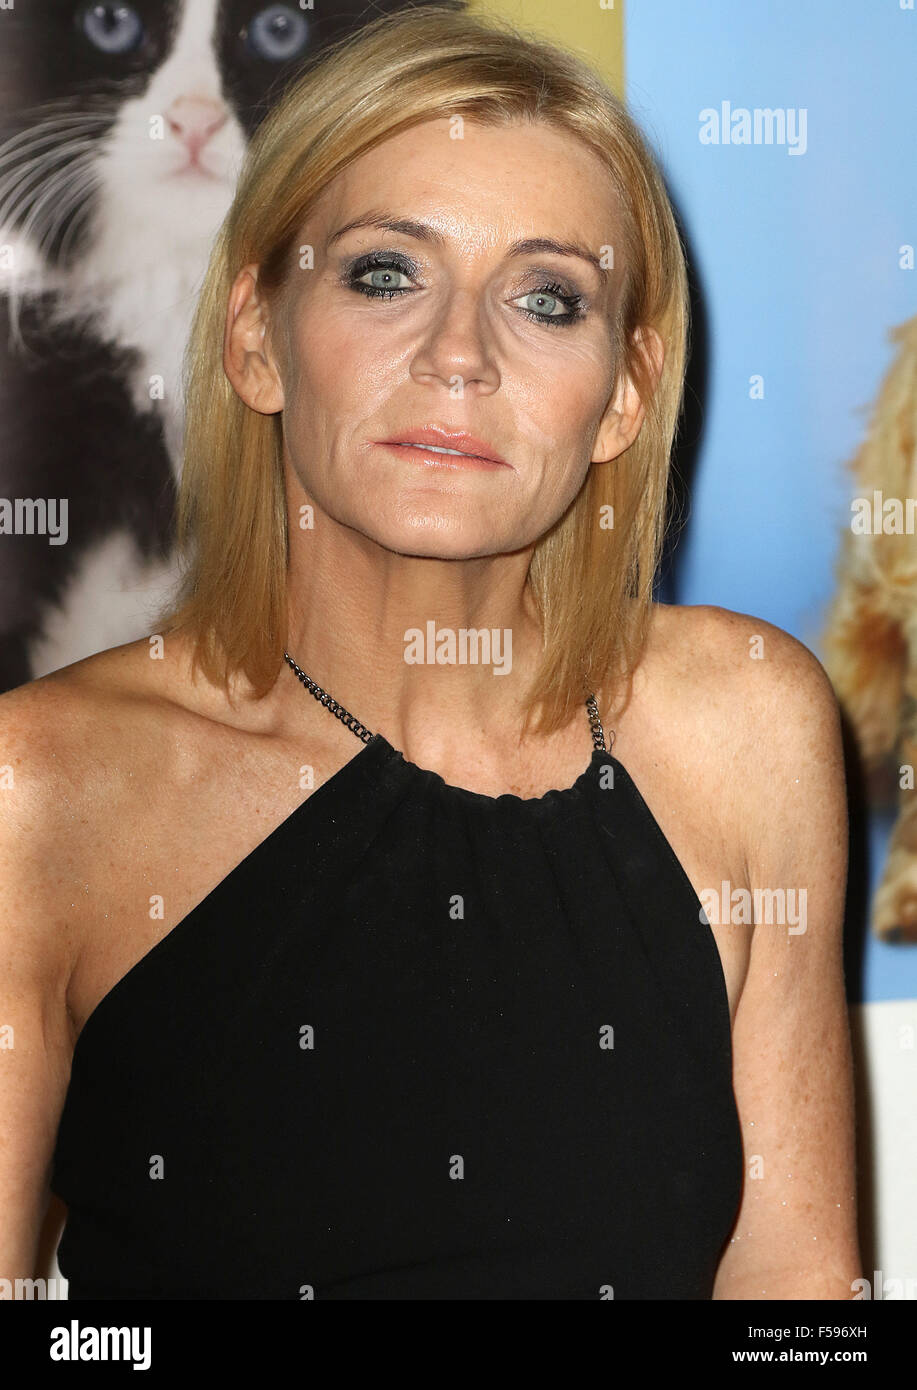 October 21, 2015 - Michelle Collins attending the 'Daily Mirror & RSPCA Animal Hero Awards 2015' at - Stock Image